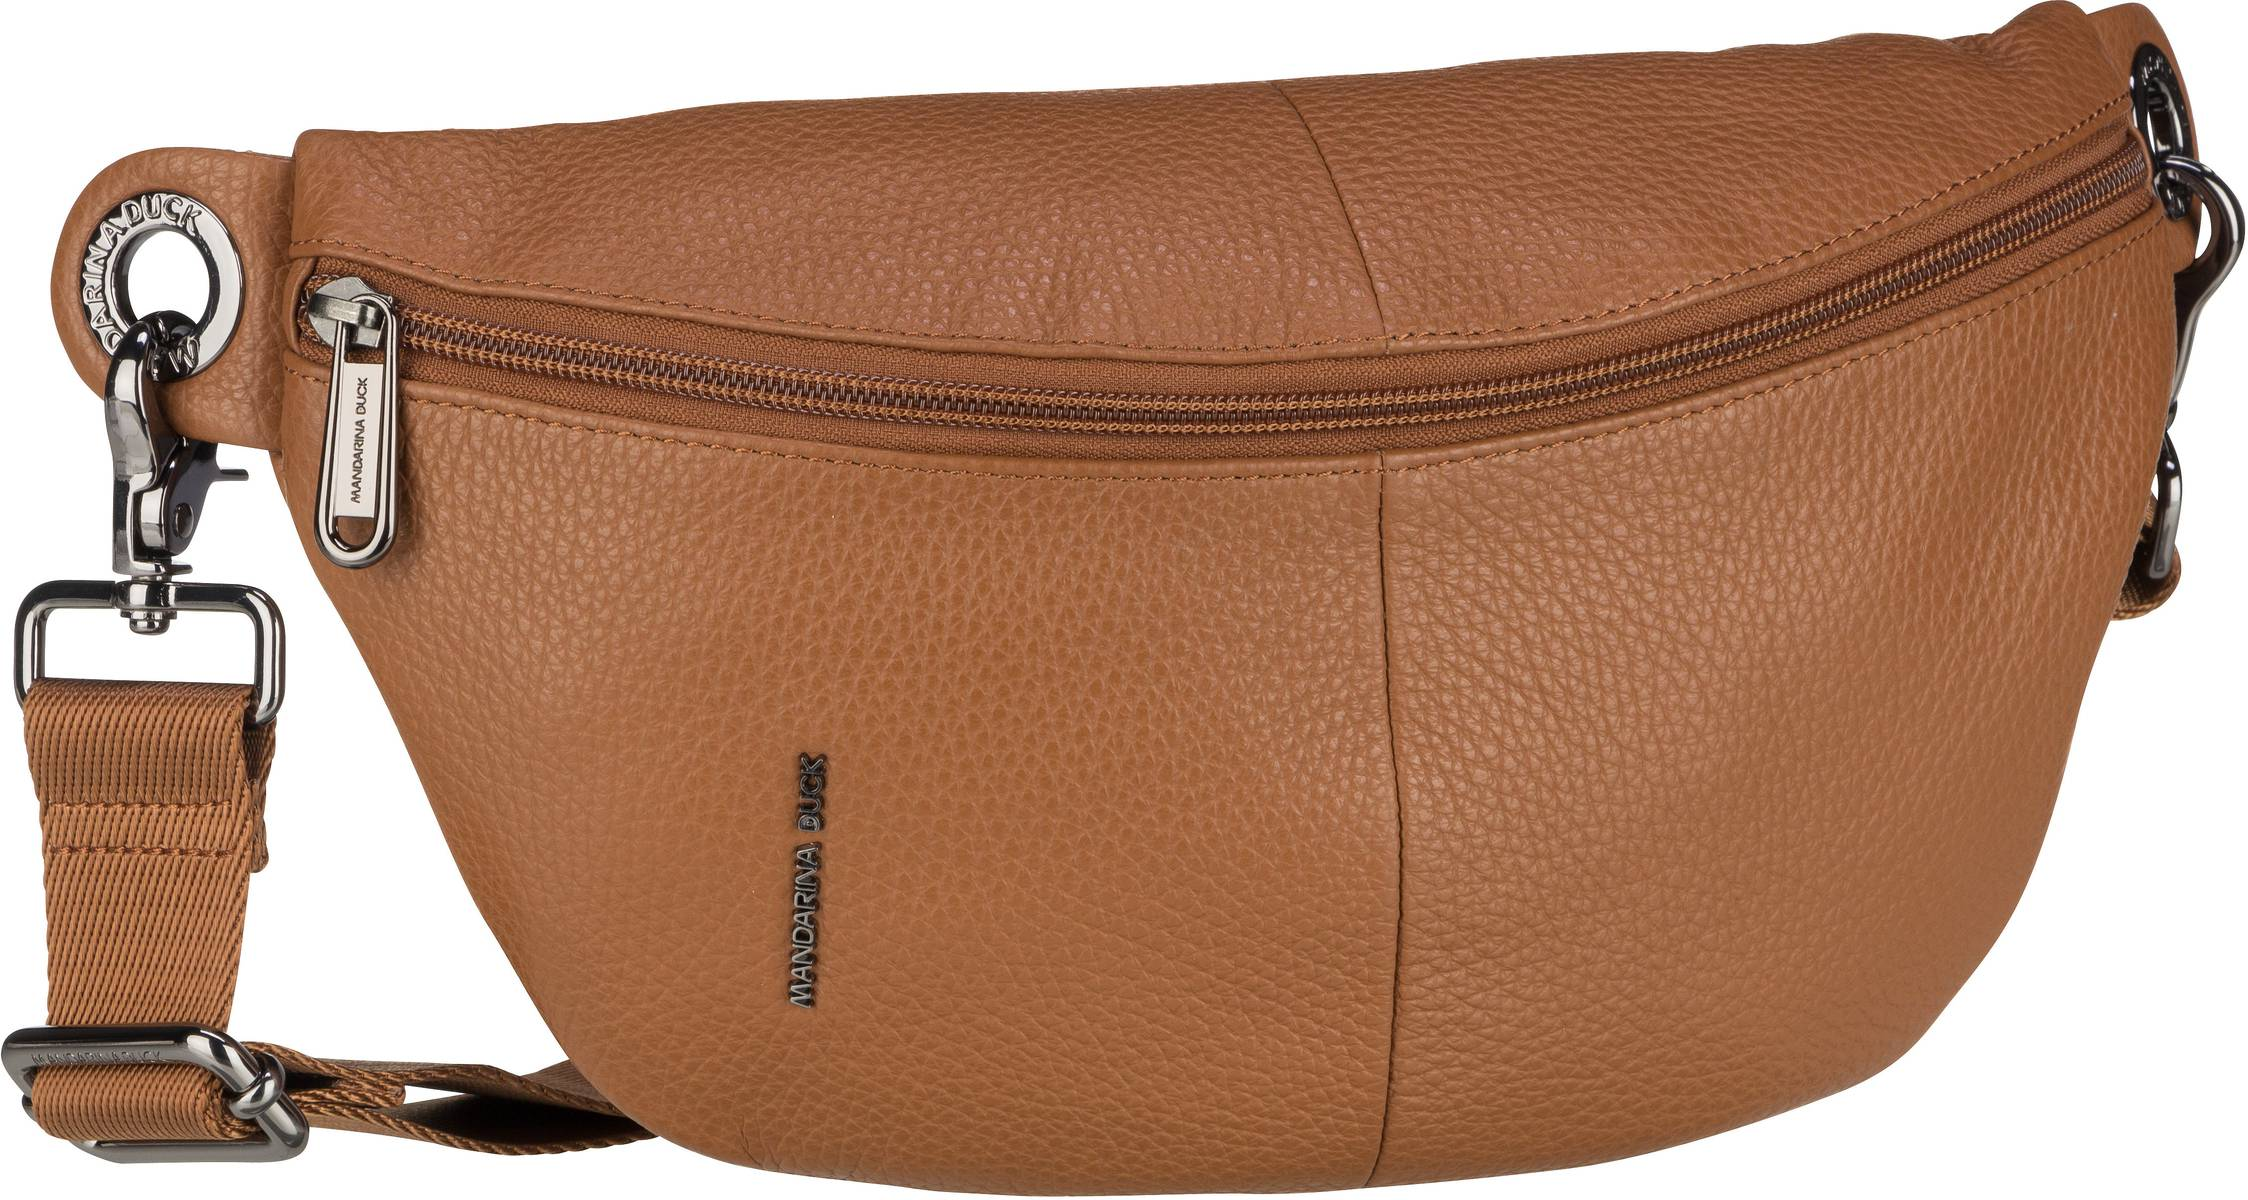 mandarina duck -  Gürteltasche Mellow Leather Bum Bag FZT73 Indian Tan